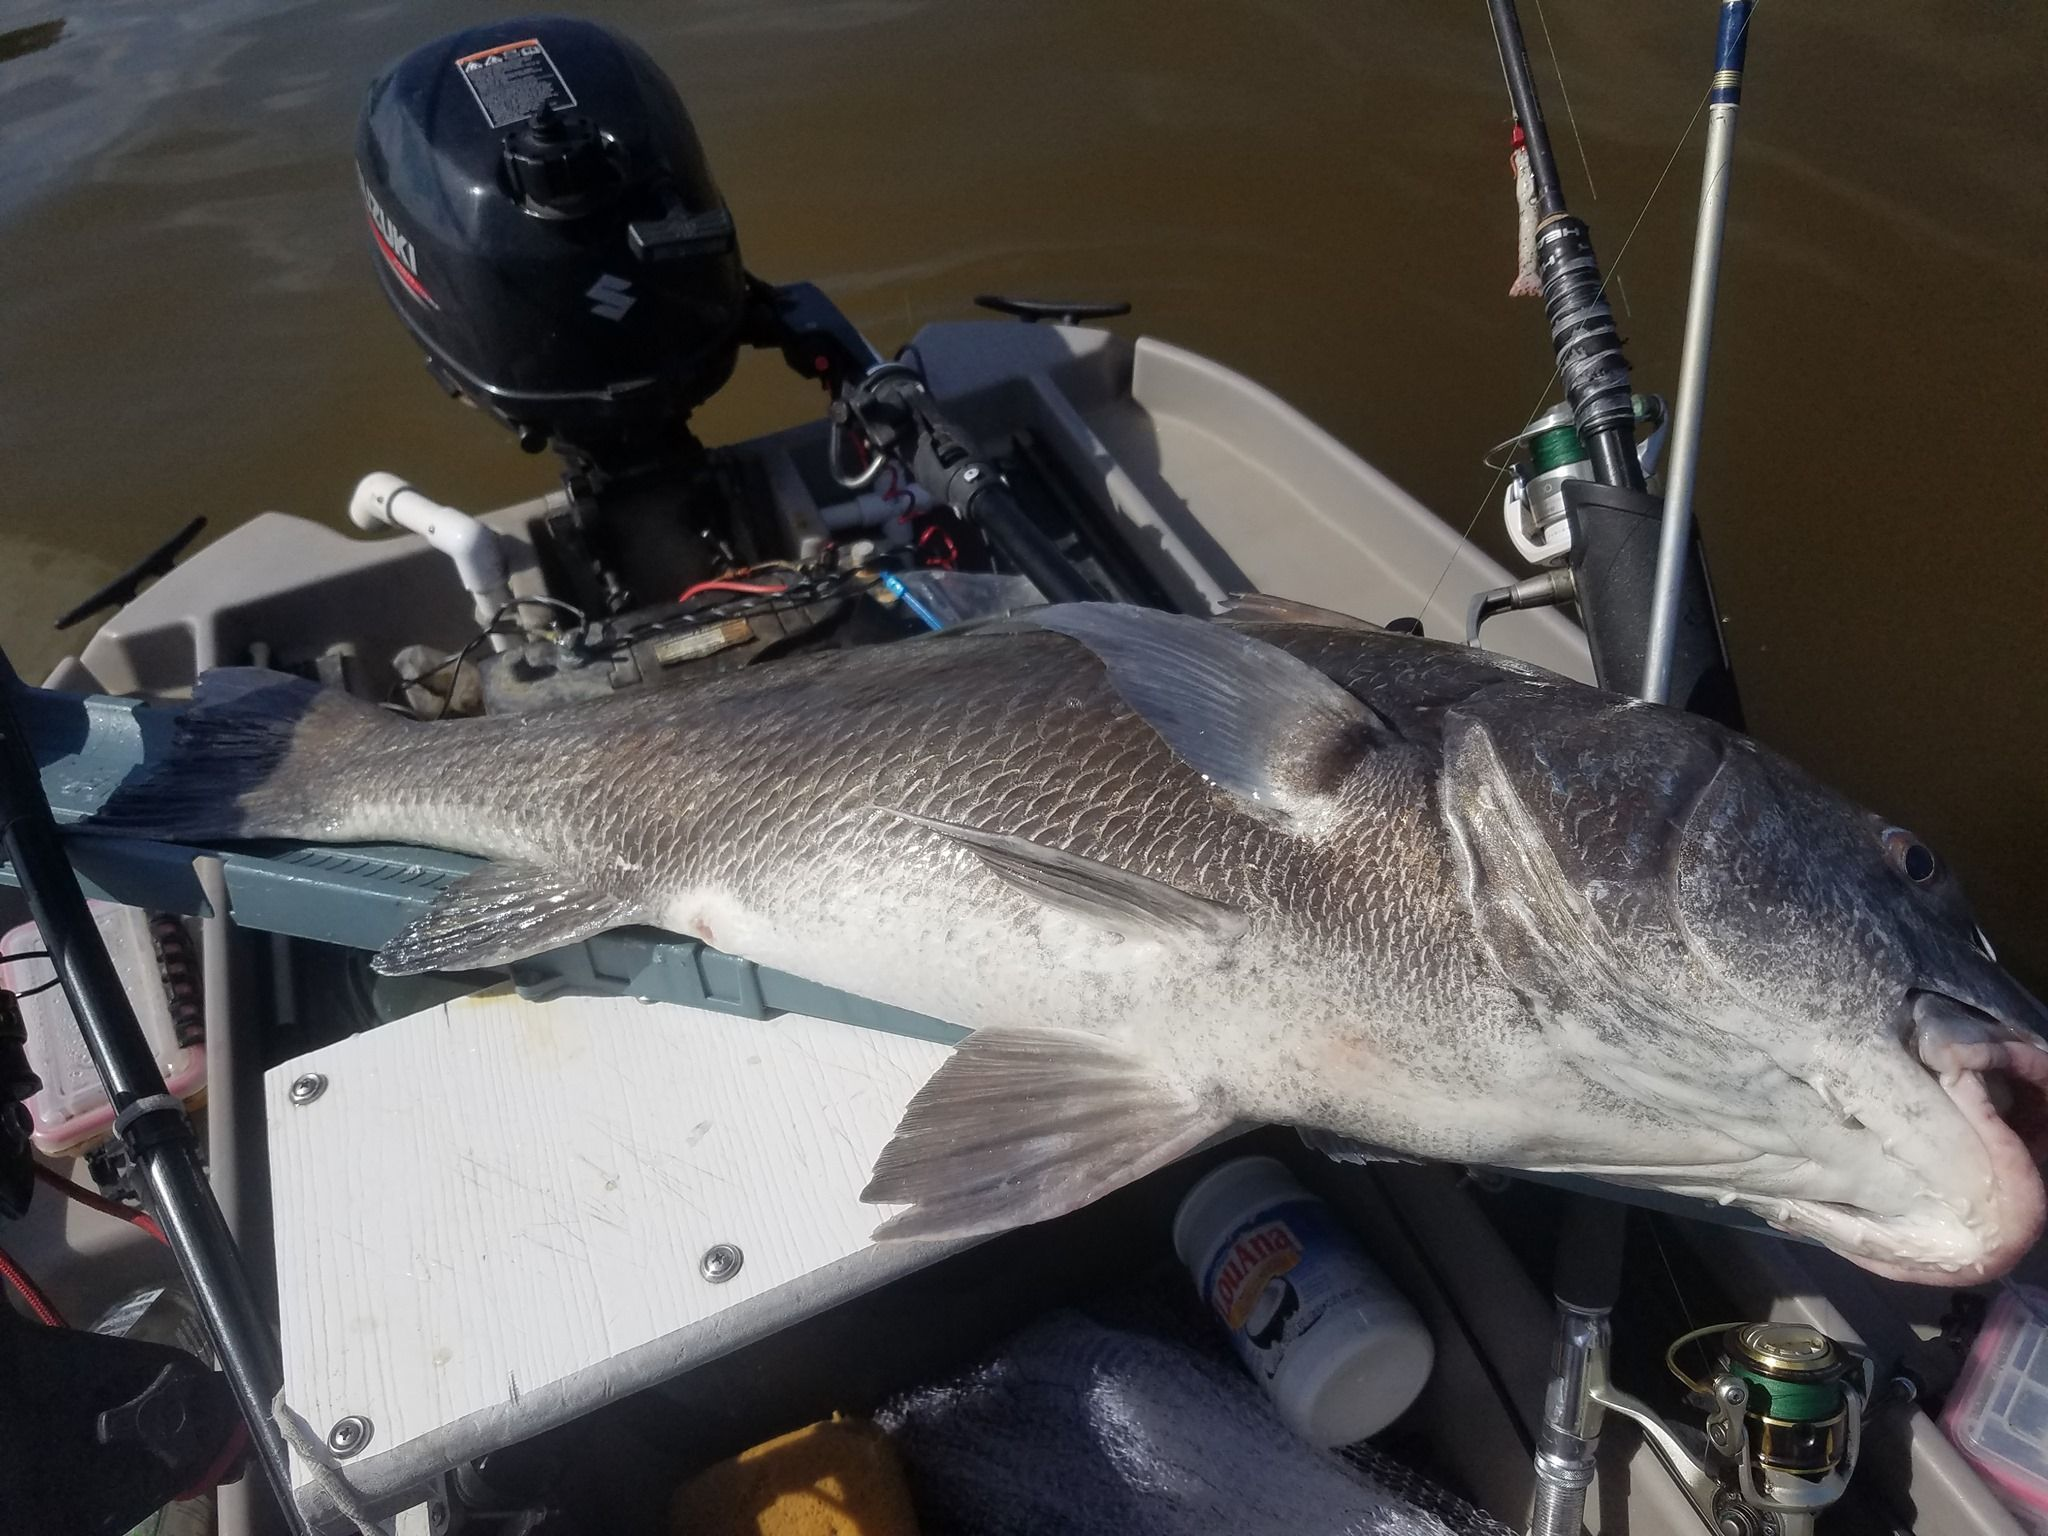 Tom Does It Again Down In Florida Here S His 35 Black Drum That He Brought In On His Twin Troller X10 The Good Fight Paid Off Best Fishing Fish Water Sports